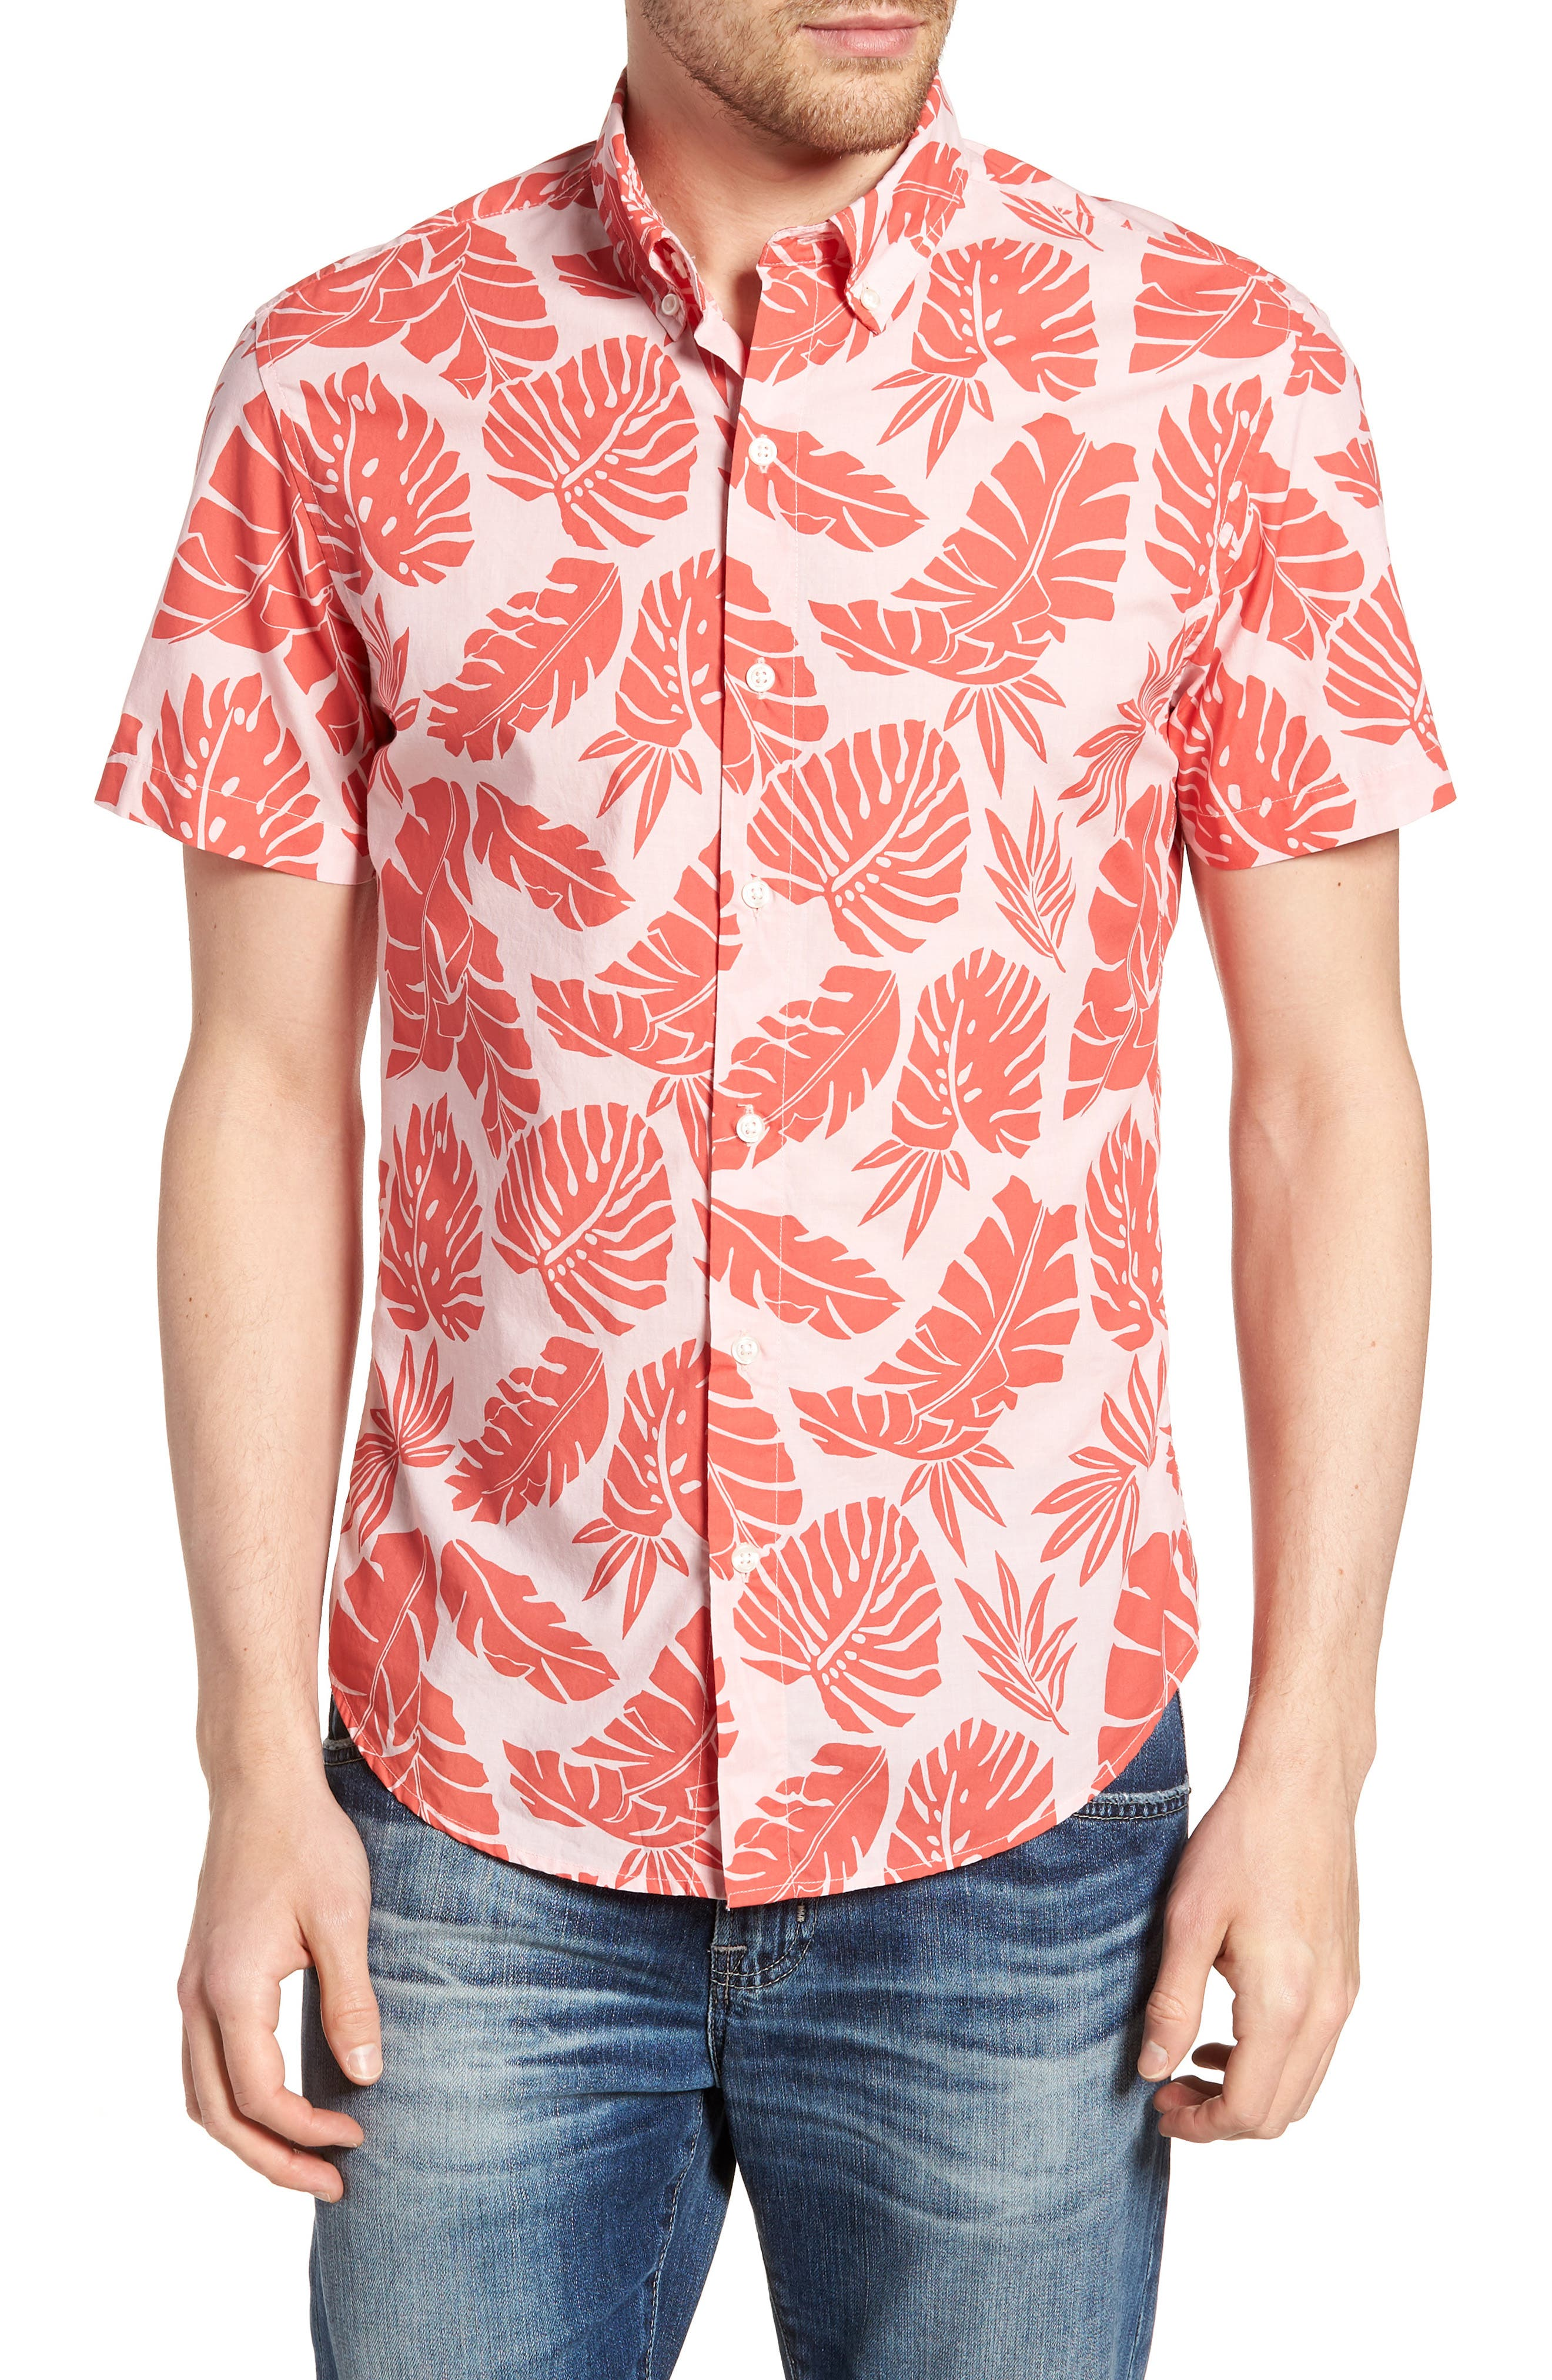 Riviera Slim Fit Palm Print Sport Shirt,                             Main thumbnail 1, color,                             Palm Scatter - Coral Fan